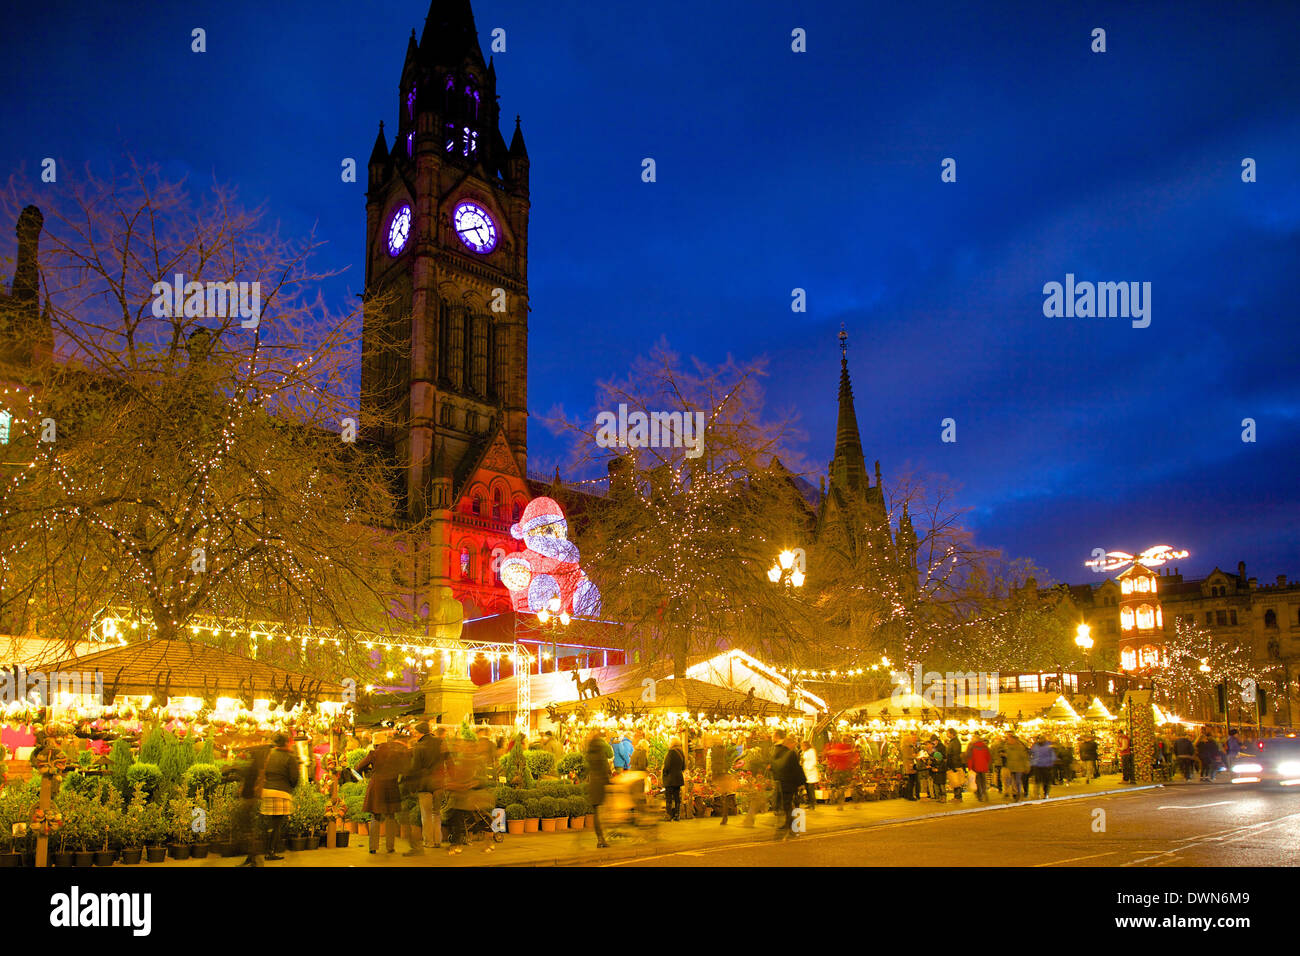 Christmas Market and Town Hall, Albert Square, Manchester, England, United Kingdom, Europe - Stock Image